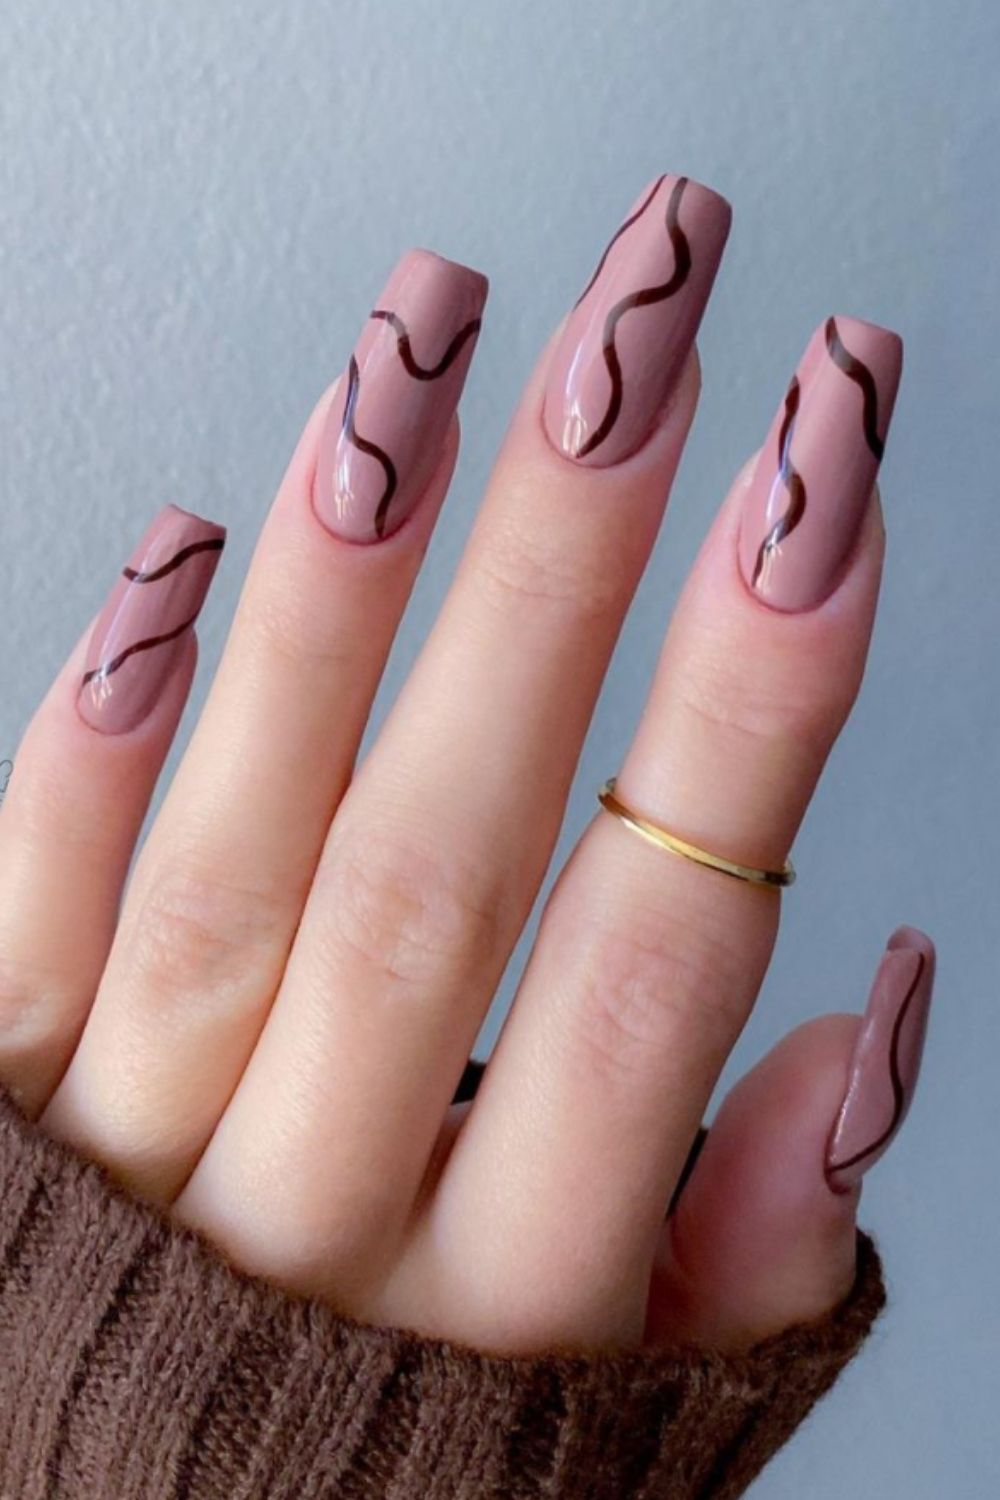 Brown and pink nails